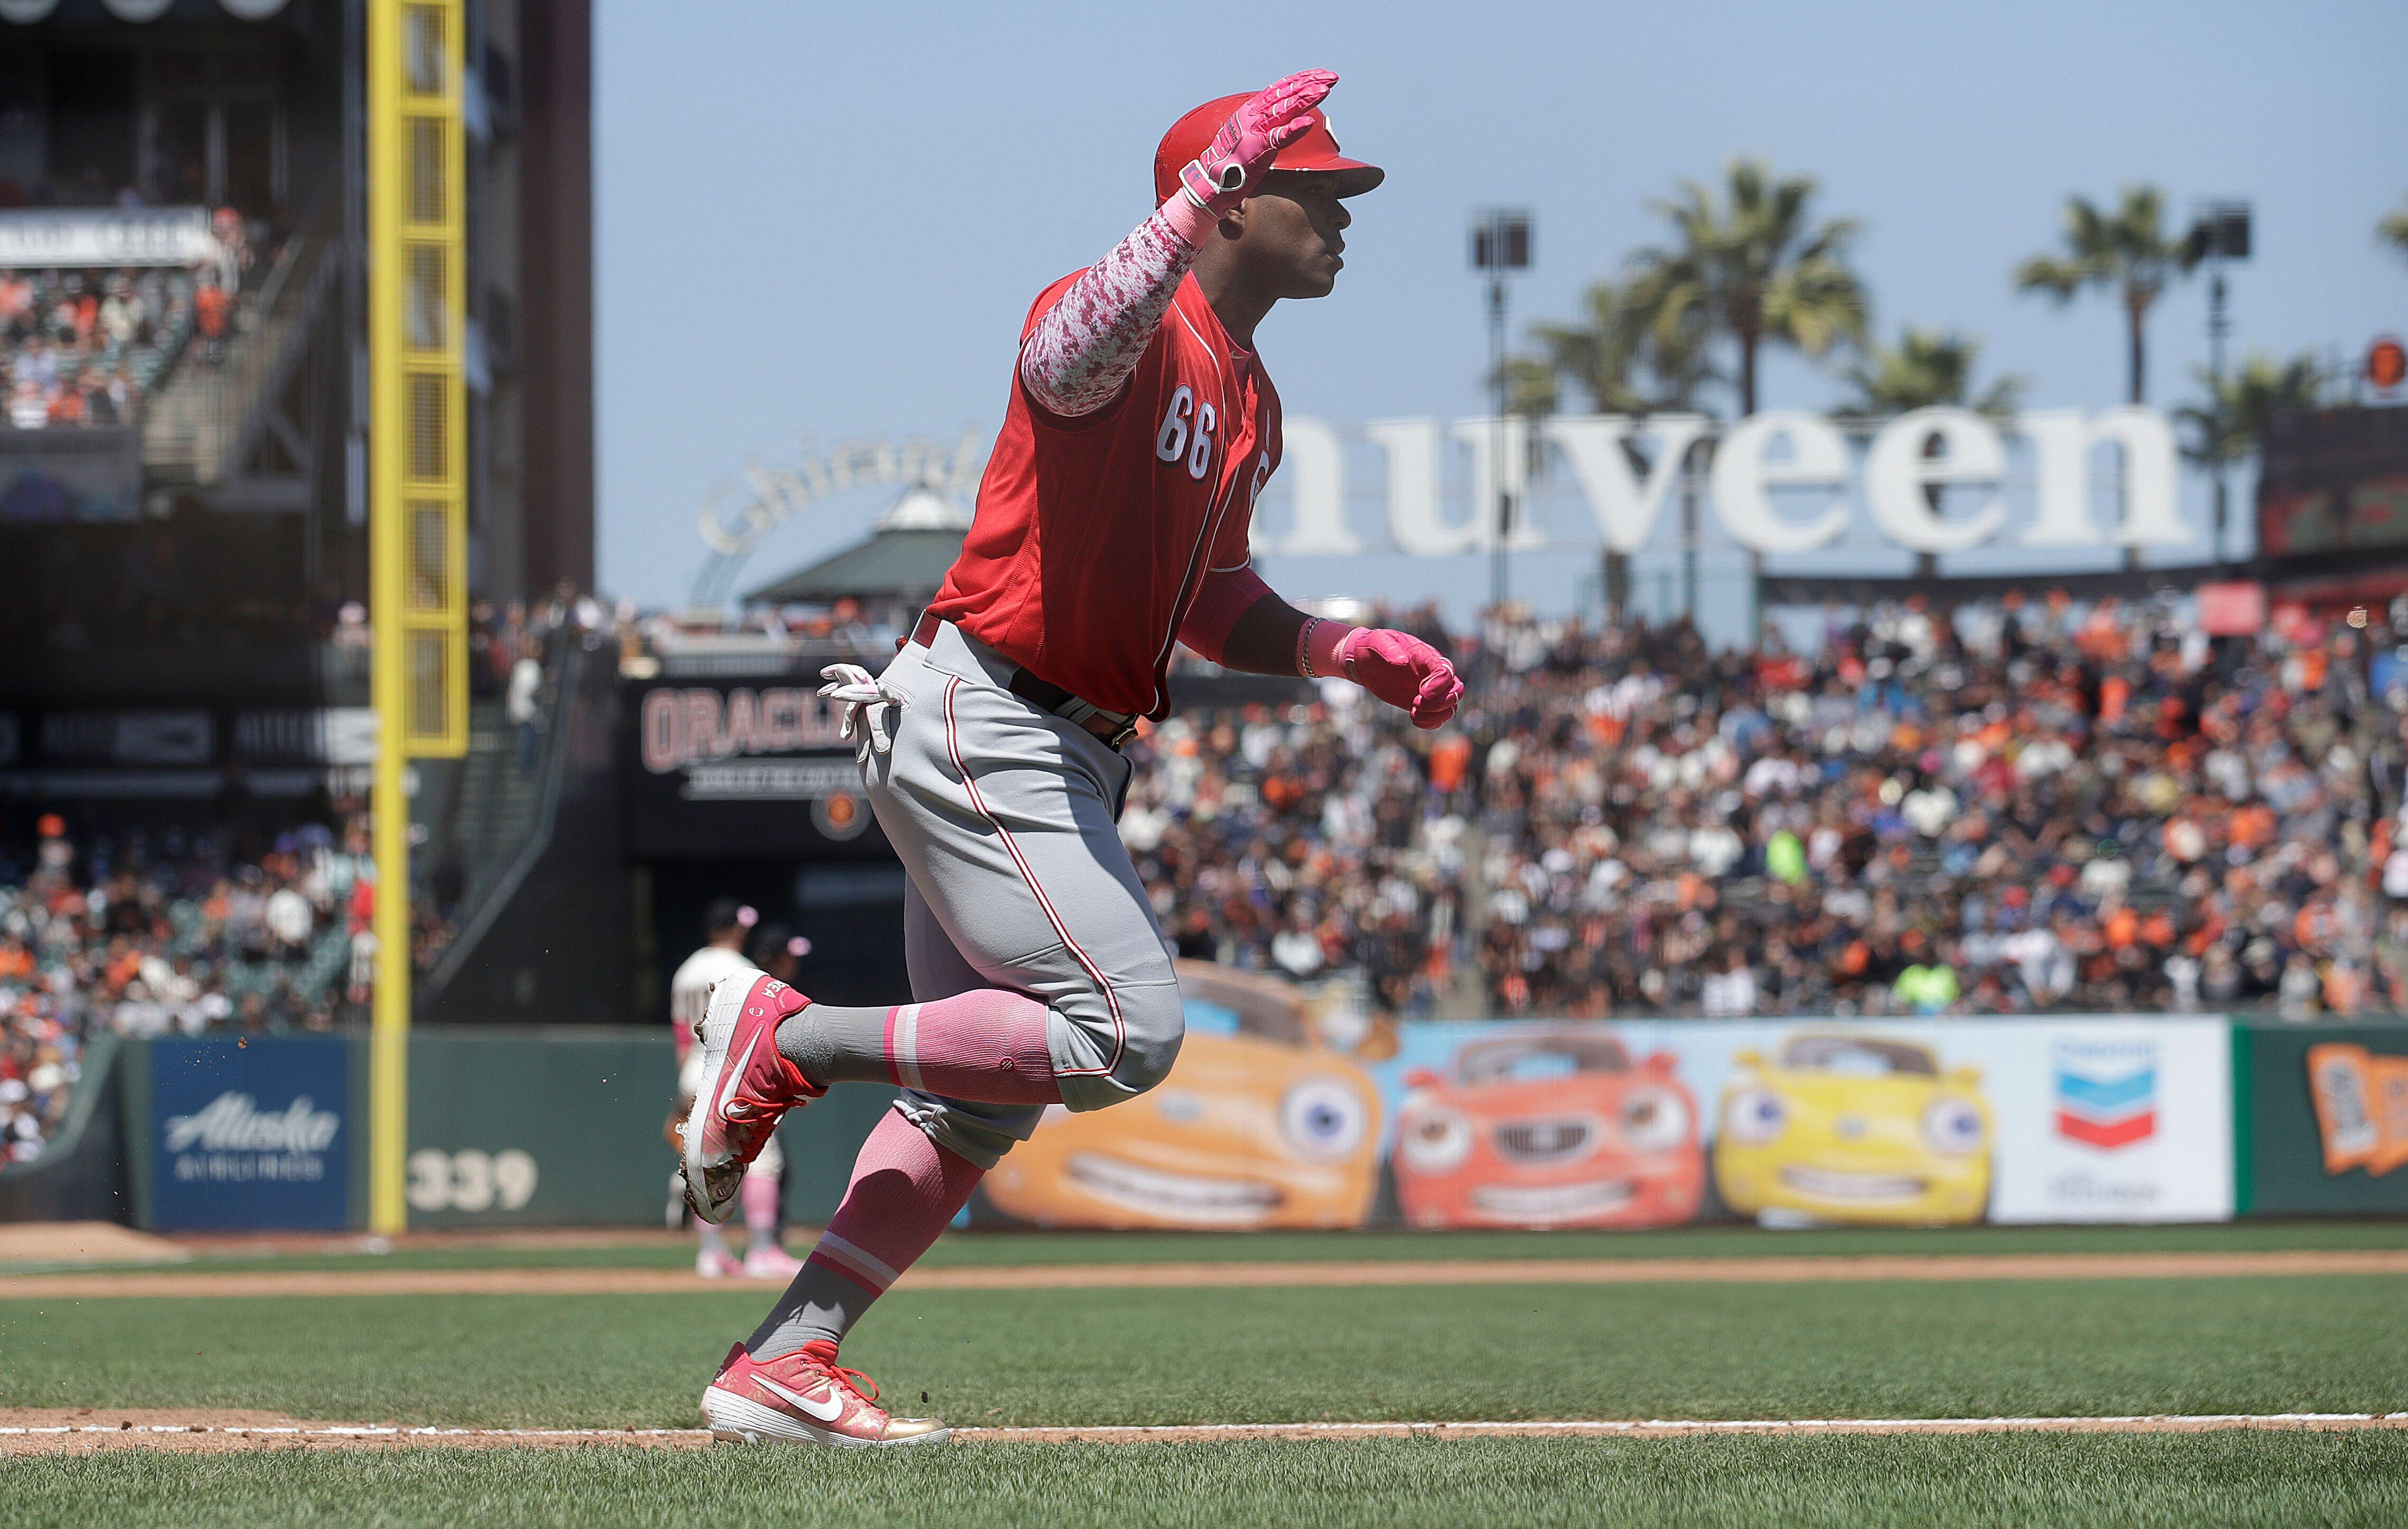 Reds OF Yasiel Puig continues feud with Giants SP Madison Bumgarner - Yahoo Sports